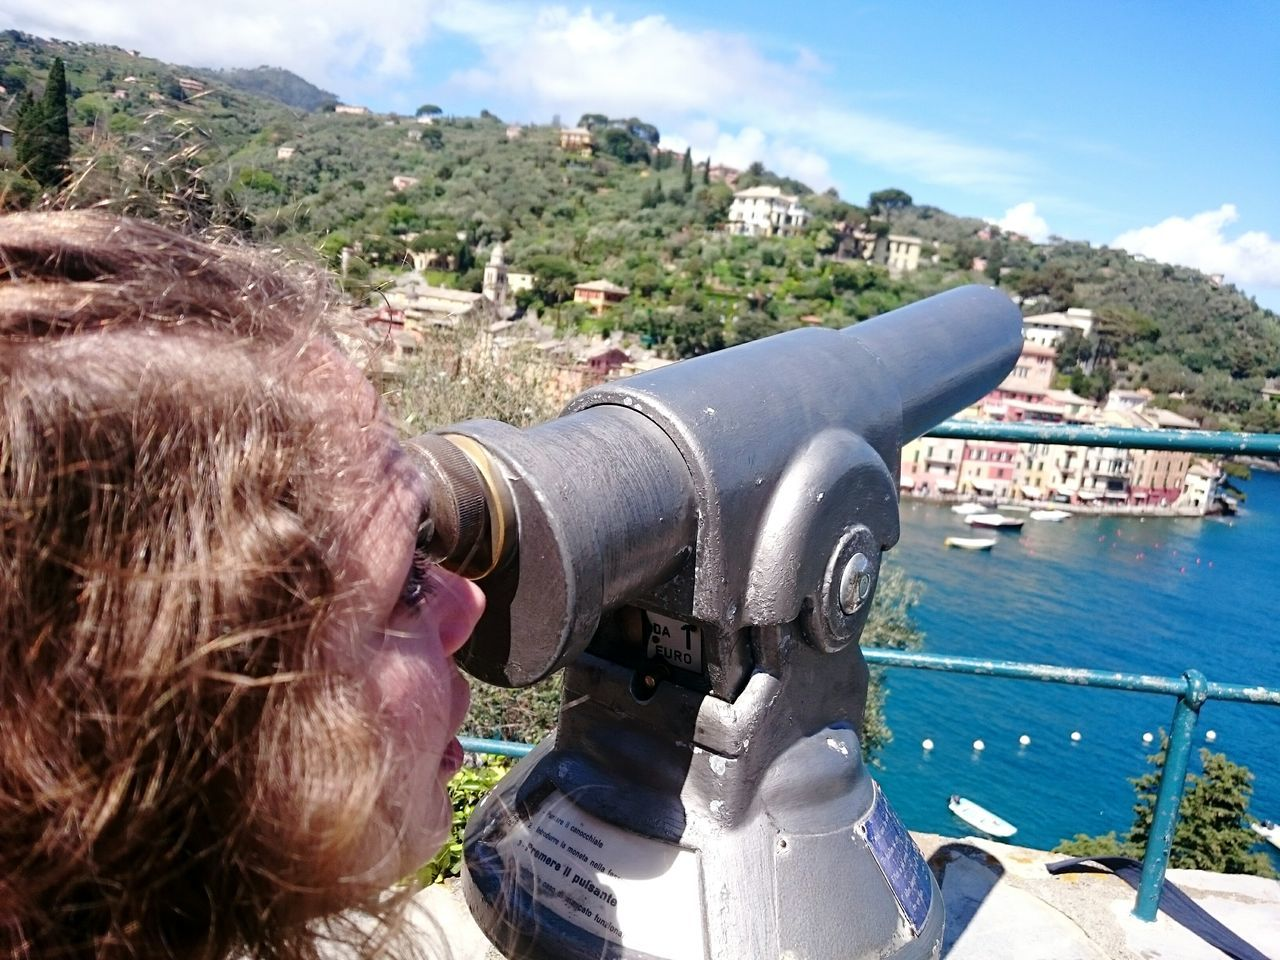 water, coin-operated binoculars, real people, one person, day, outdoors, telescope, hand-held telescope, sky, leisure activity, sea, close-up, nature, architecture, people